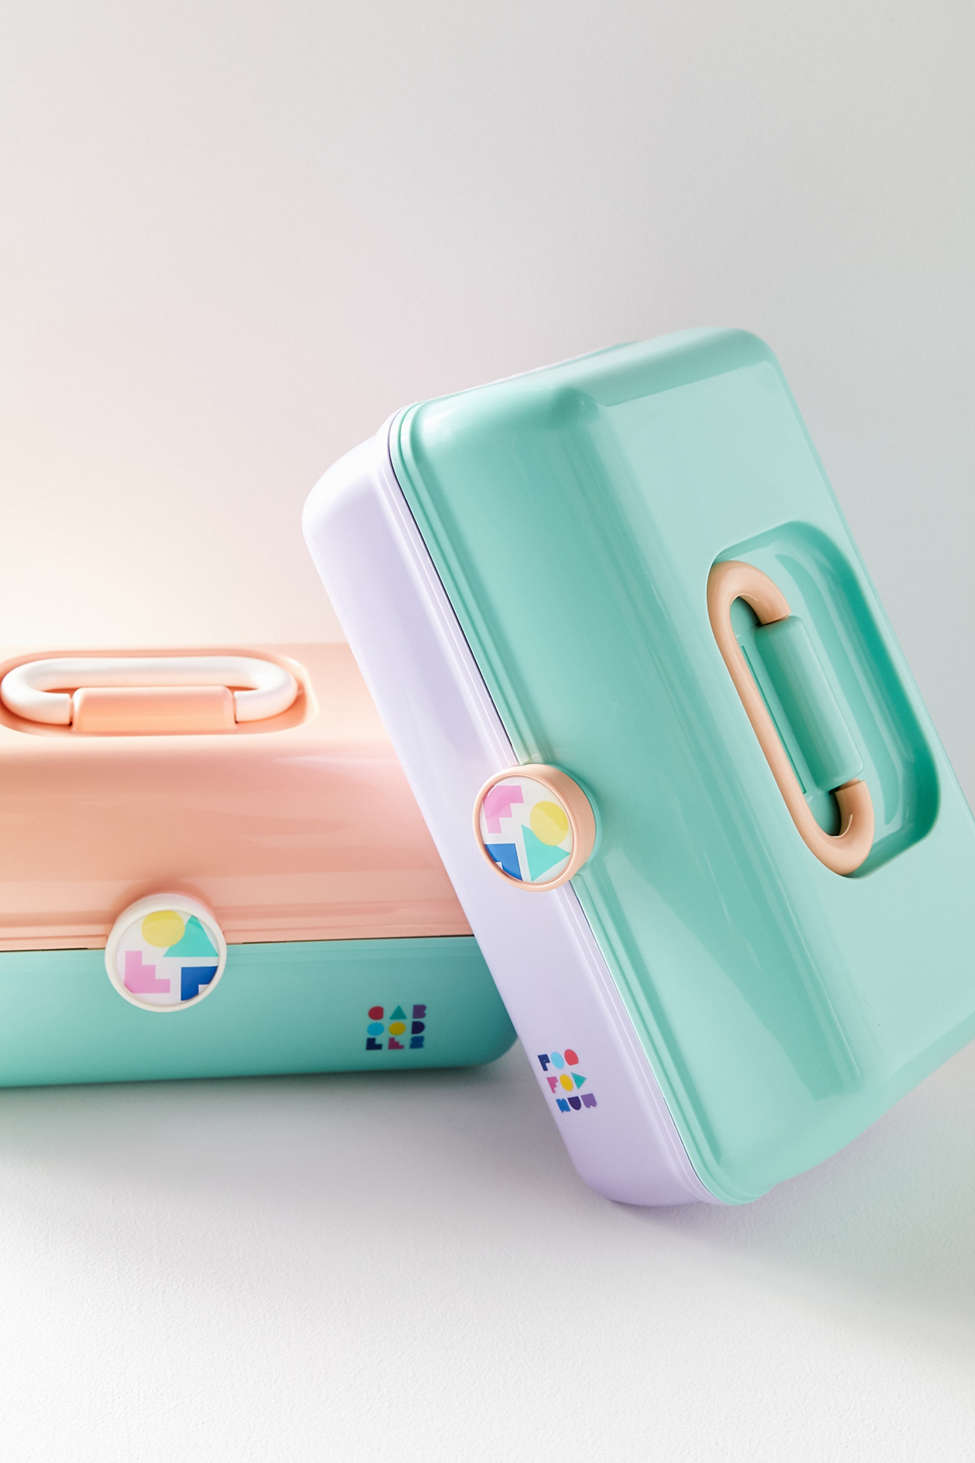 Slide View: 2: Caboodles On-The-Go Girl Makeup Case